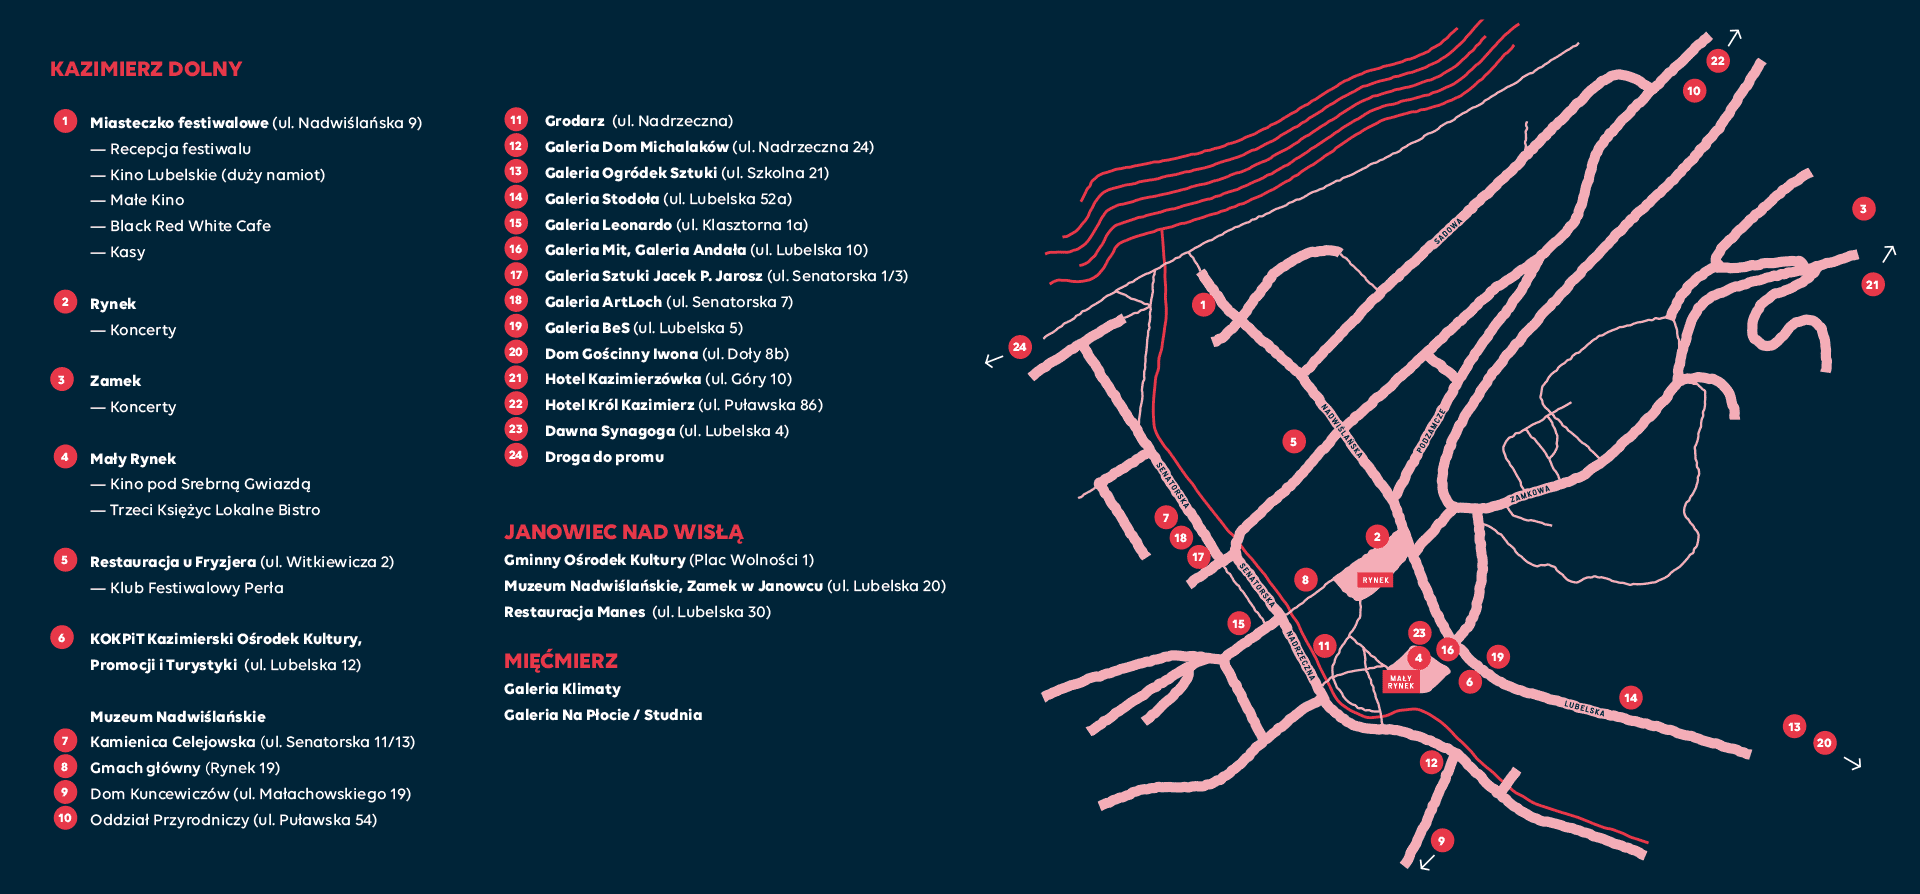 VENUES OF THE FESTIVAL